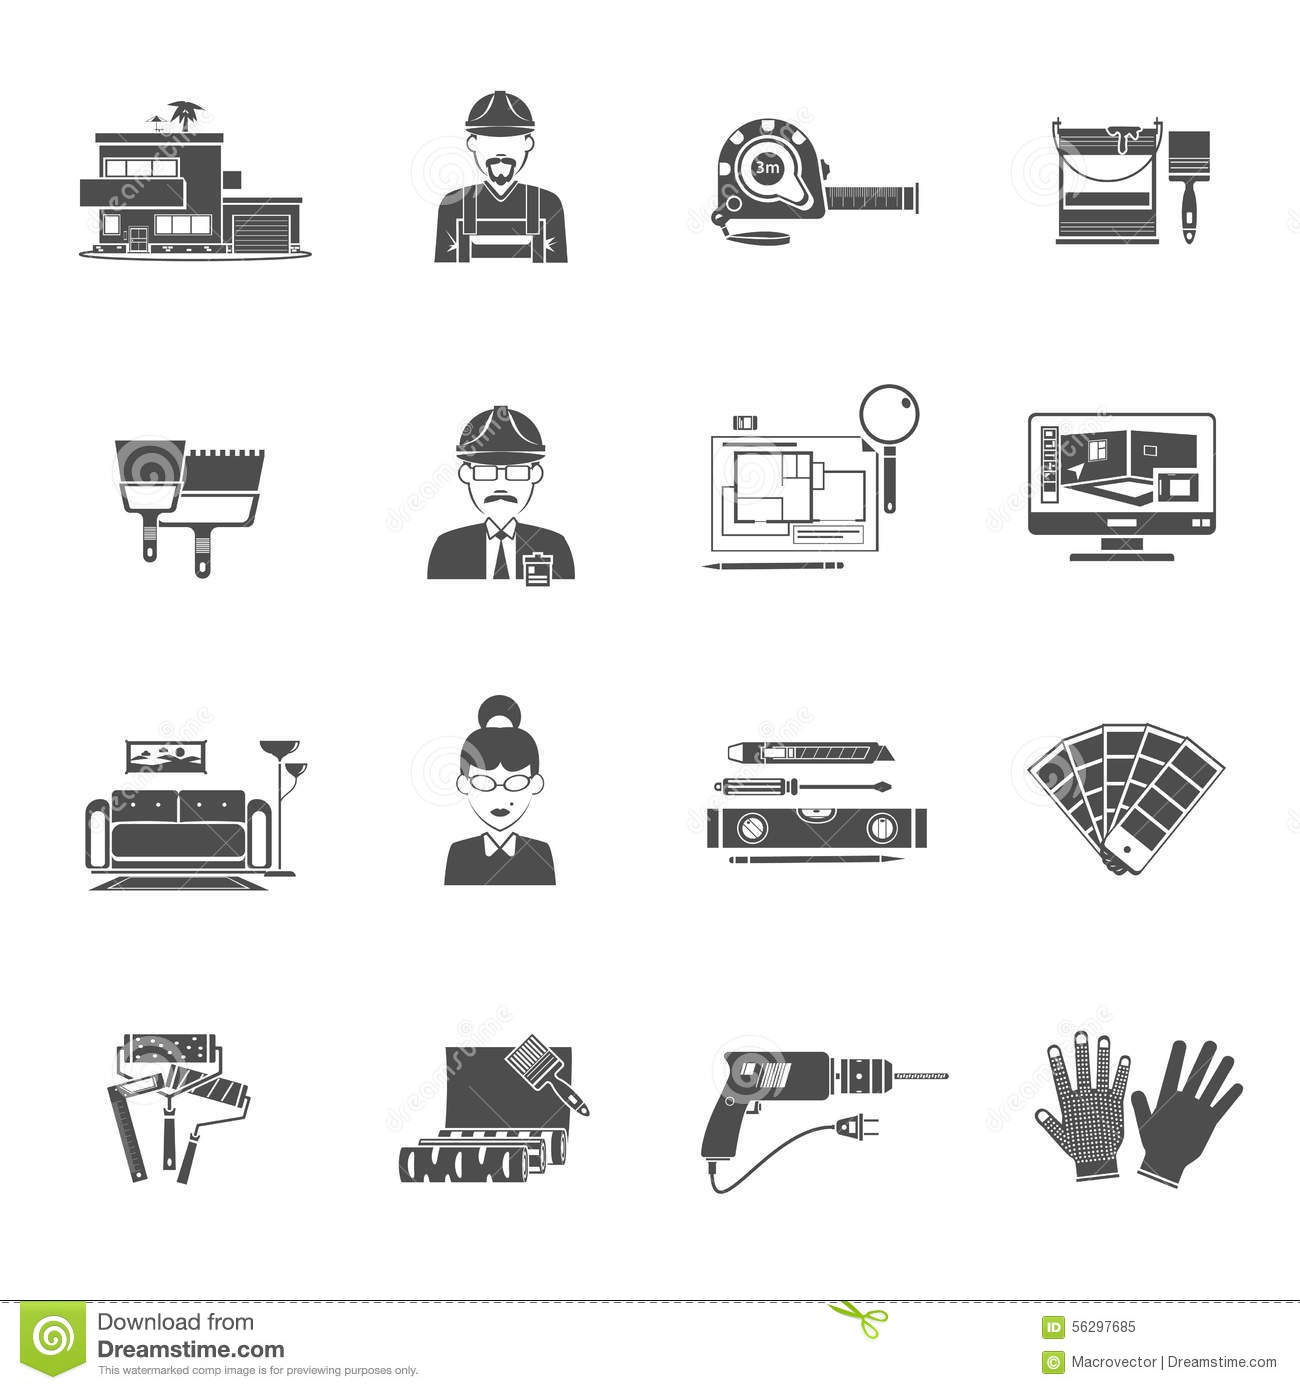 Interior design black icons set stock vector image 56297685 for Interior design images vector